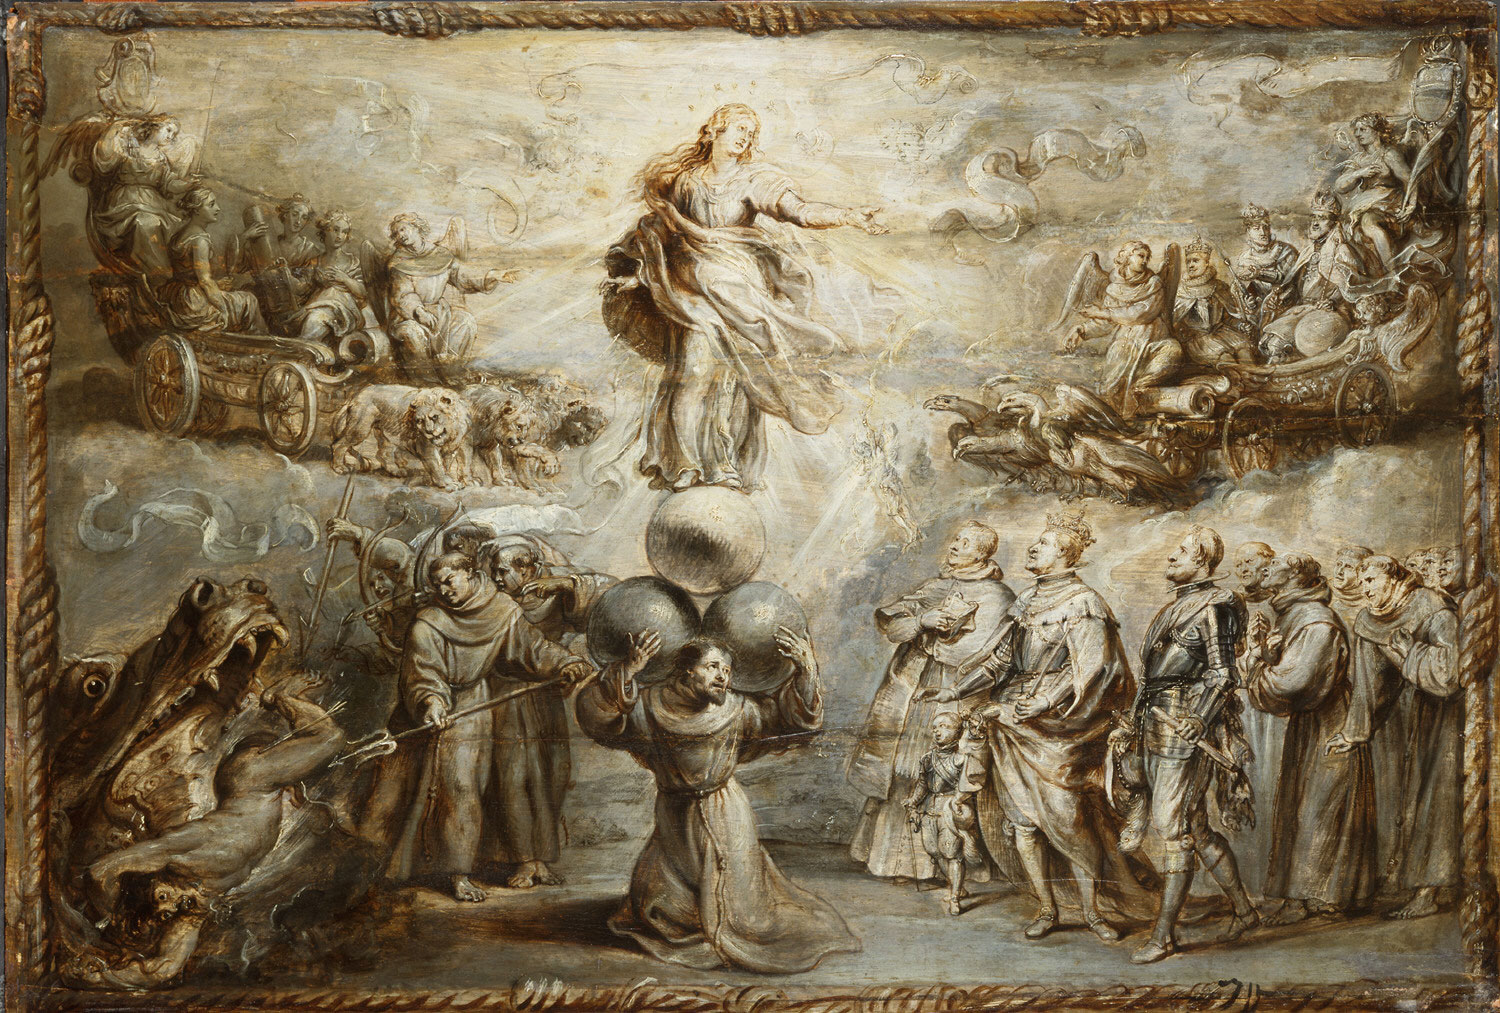 Franciscan Allegory in Honor of the Immaculate Conception